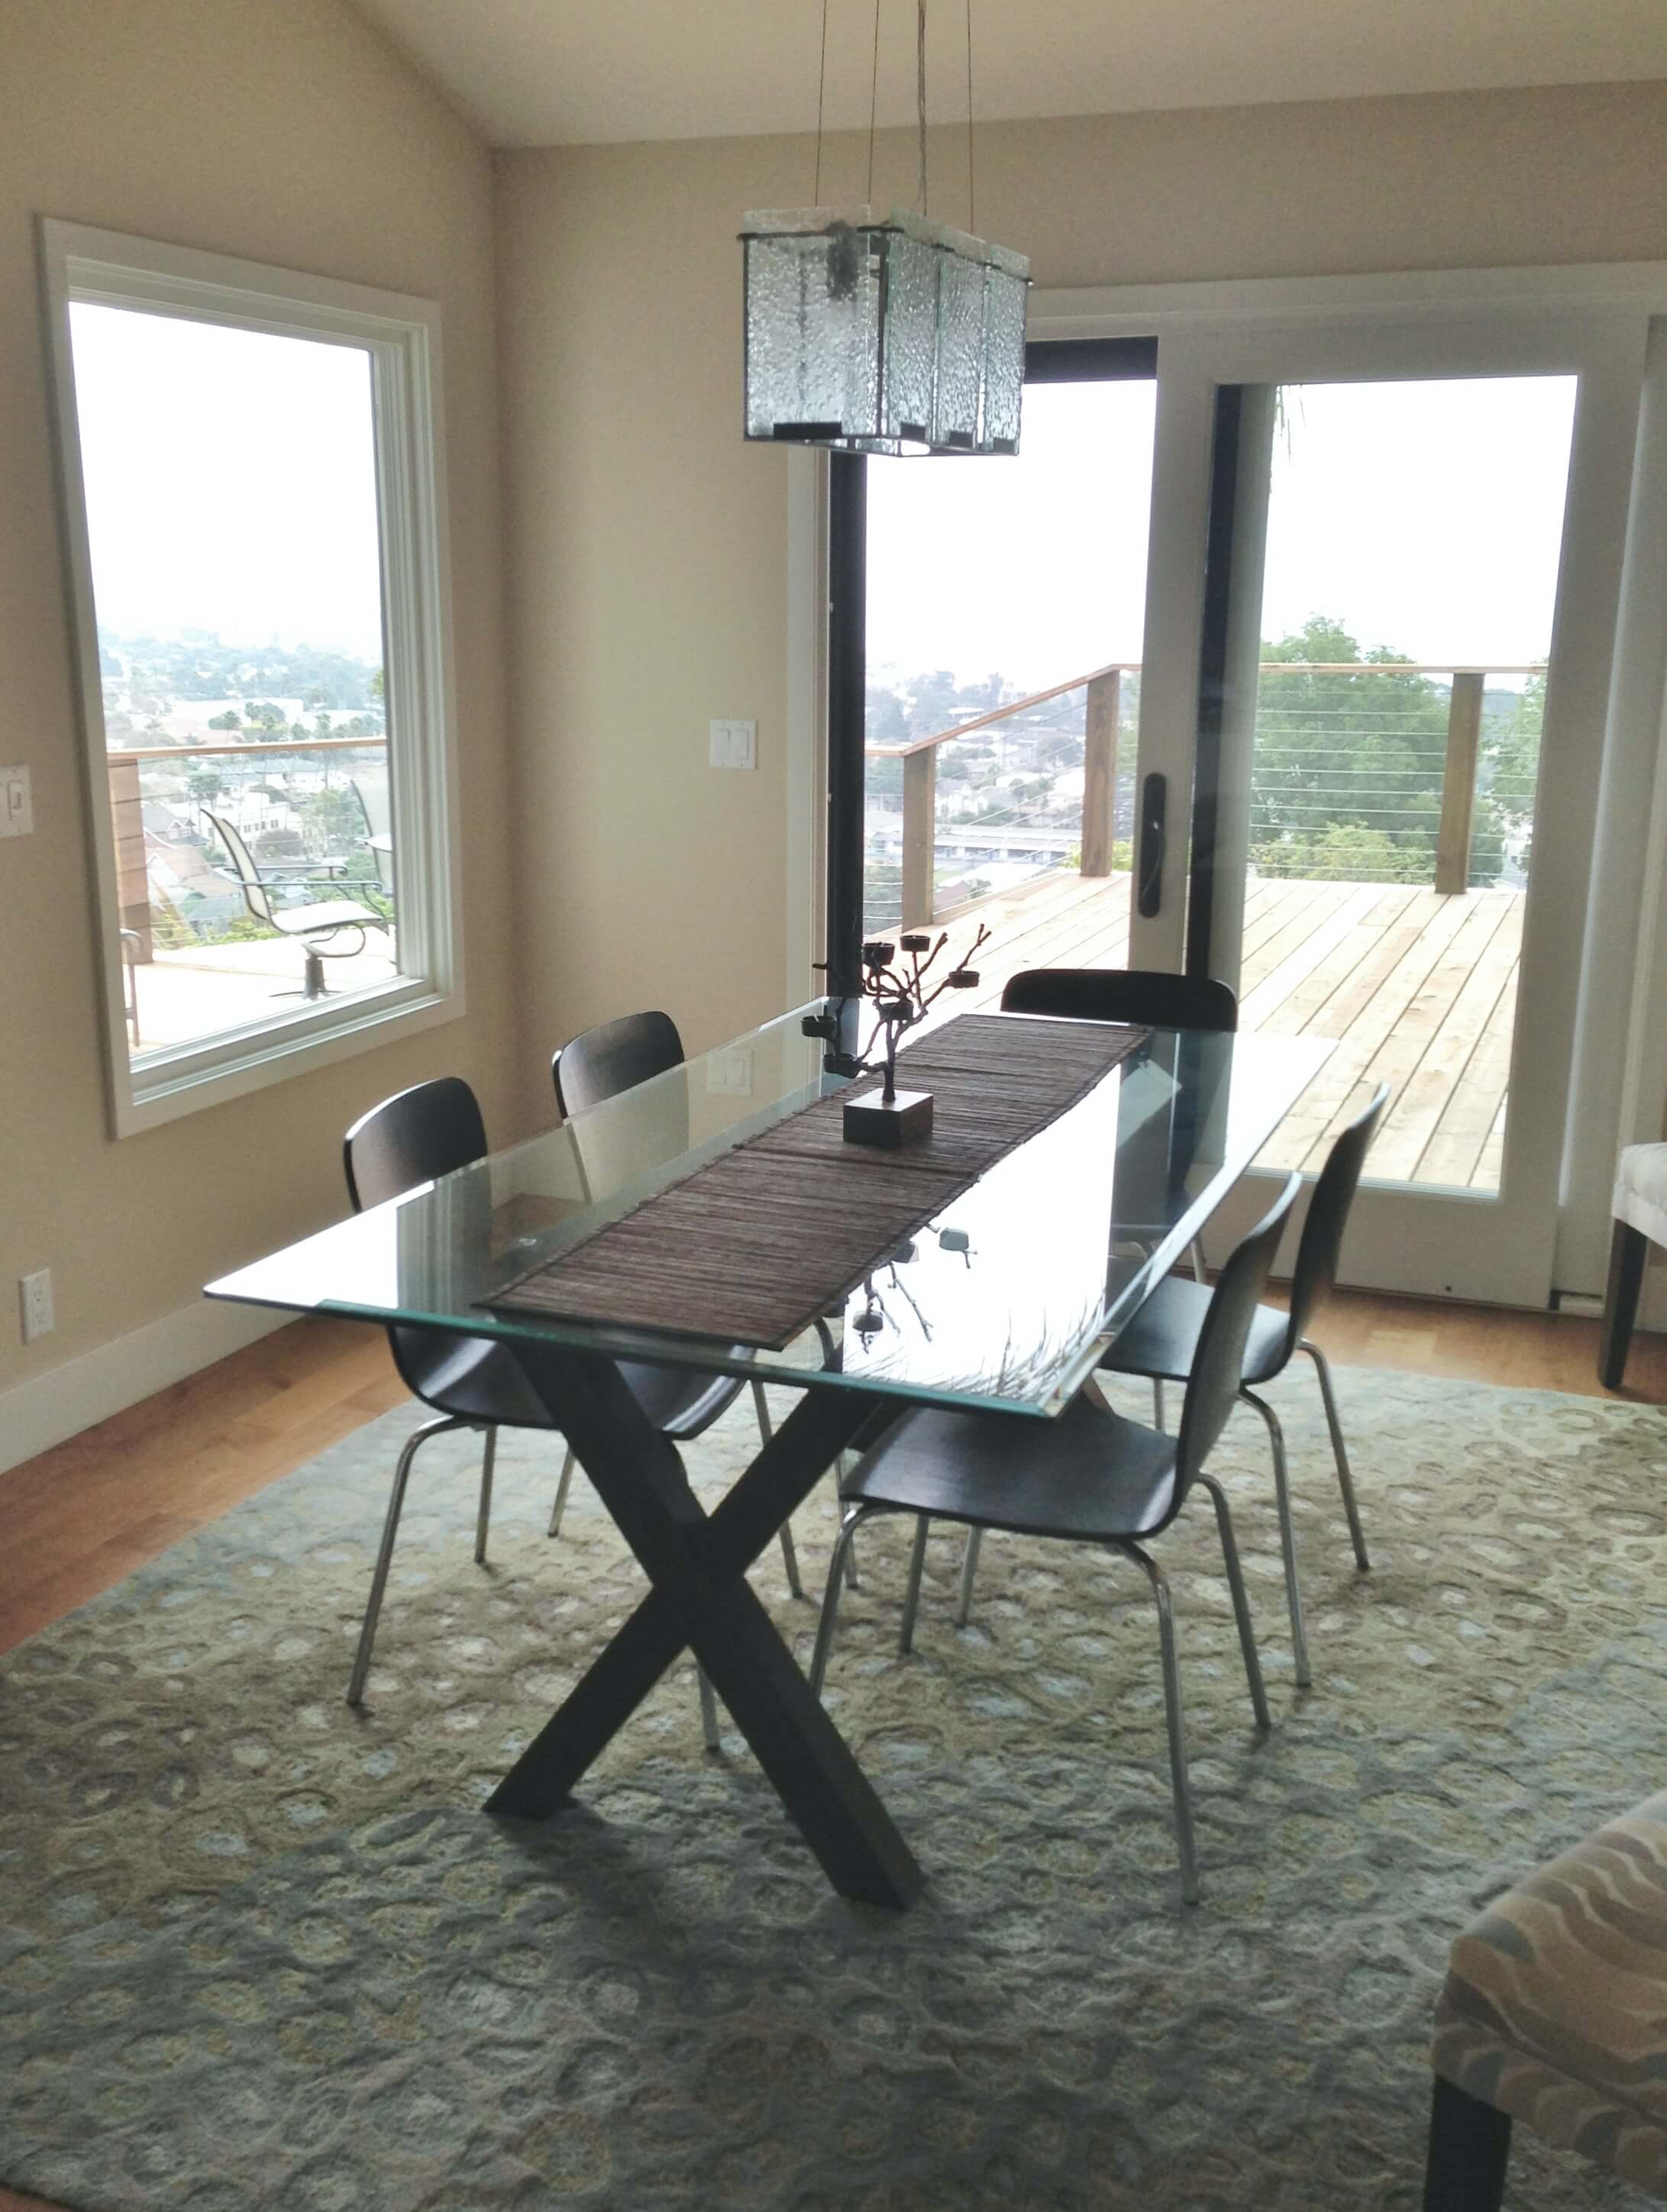 Sliding French doors to balcony deck off dining room - Ventura California rental house review tour